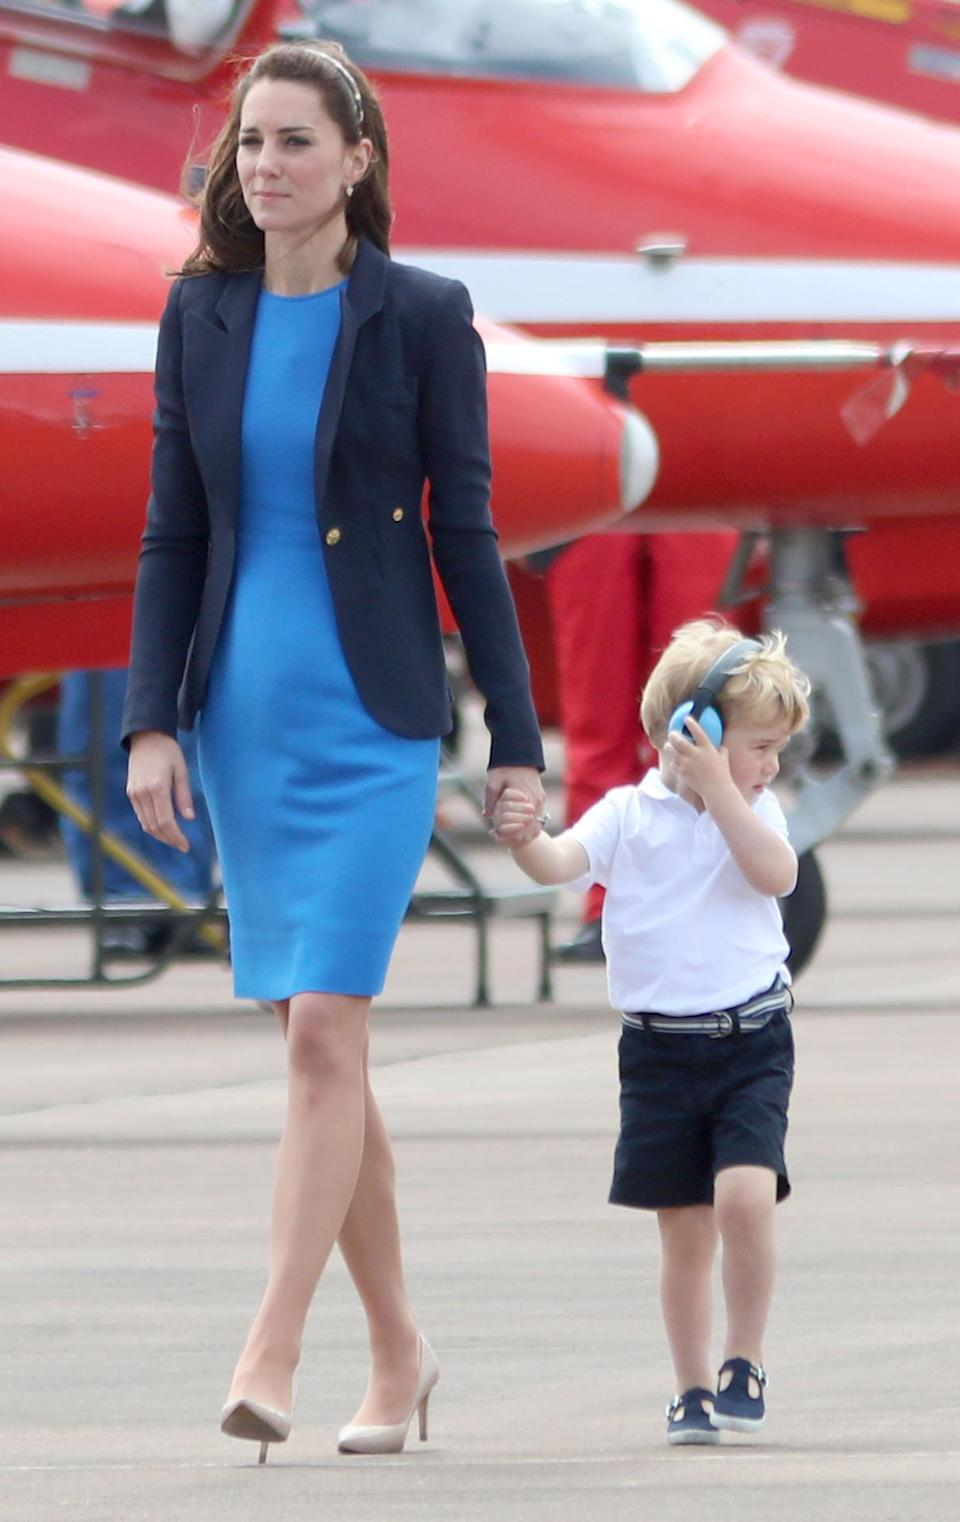 <p>Accompanied by William and Prince George, Kate's trip to RAF Fairford featured a fitted Stella McCartney dress and navy blazer along with her usual L.K. Bennett shoes.</p><p><i>[Photo: PA]</i></p>